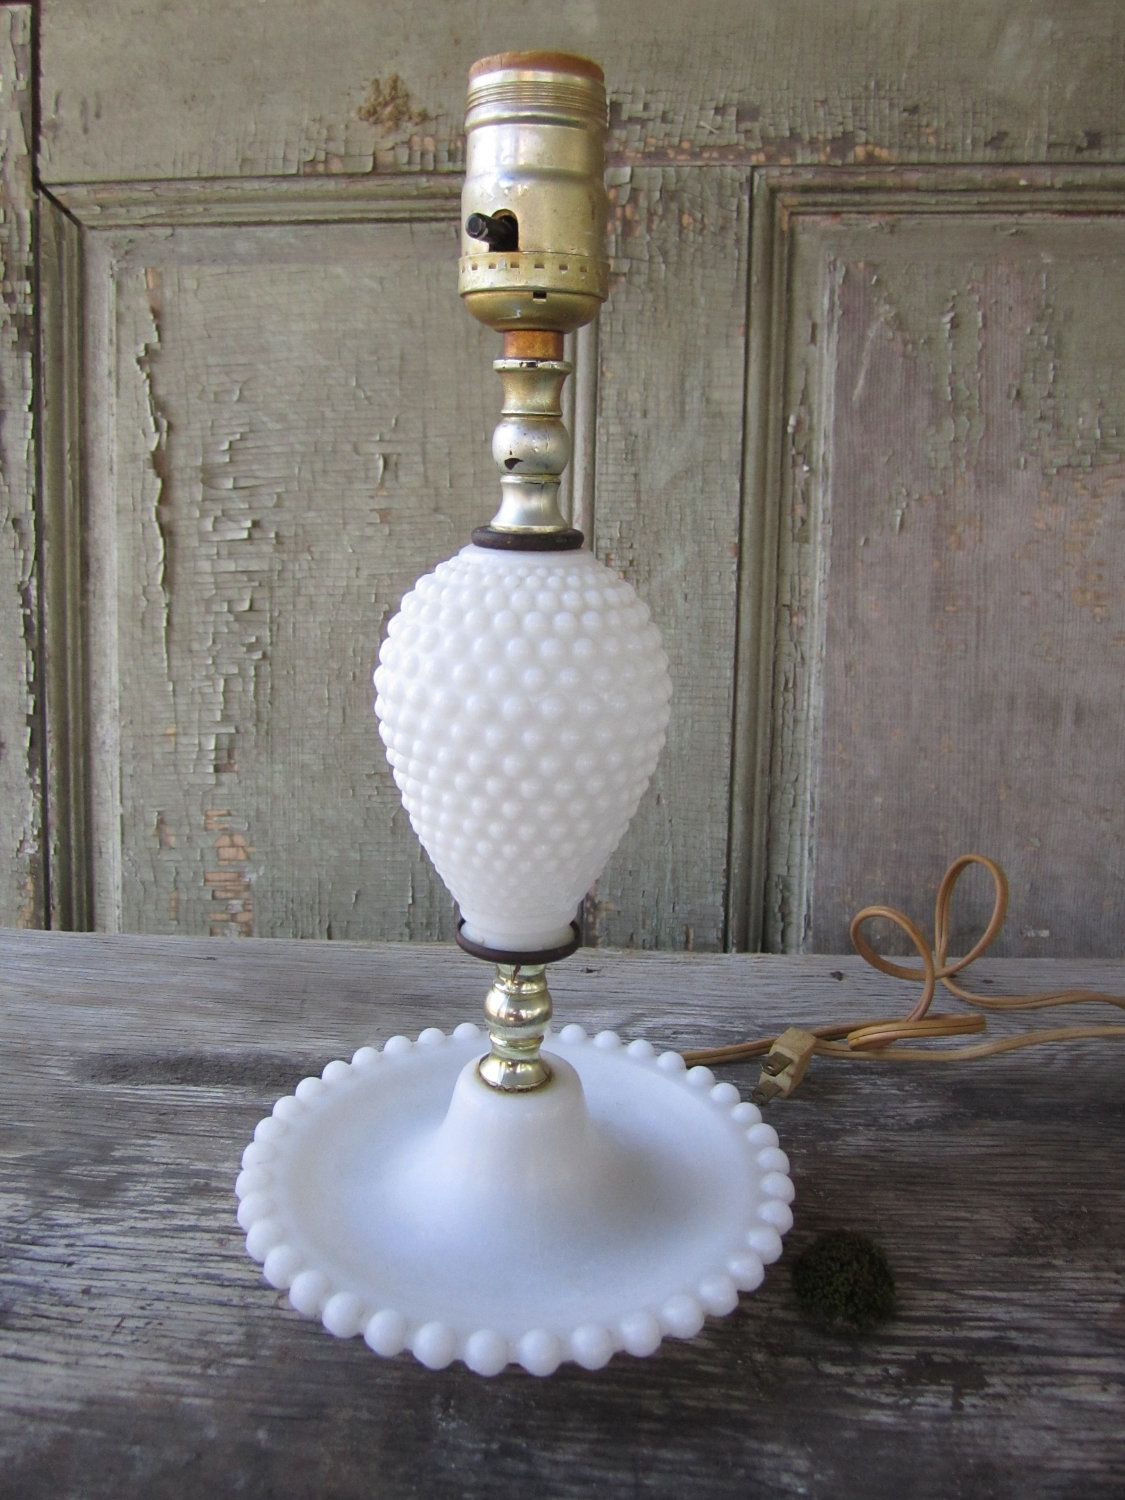 hobnail milk glass lamp i have one from childhood that's